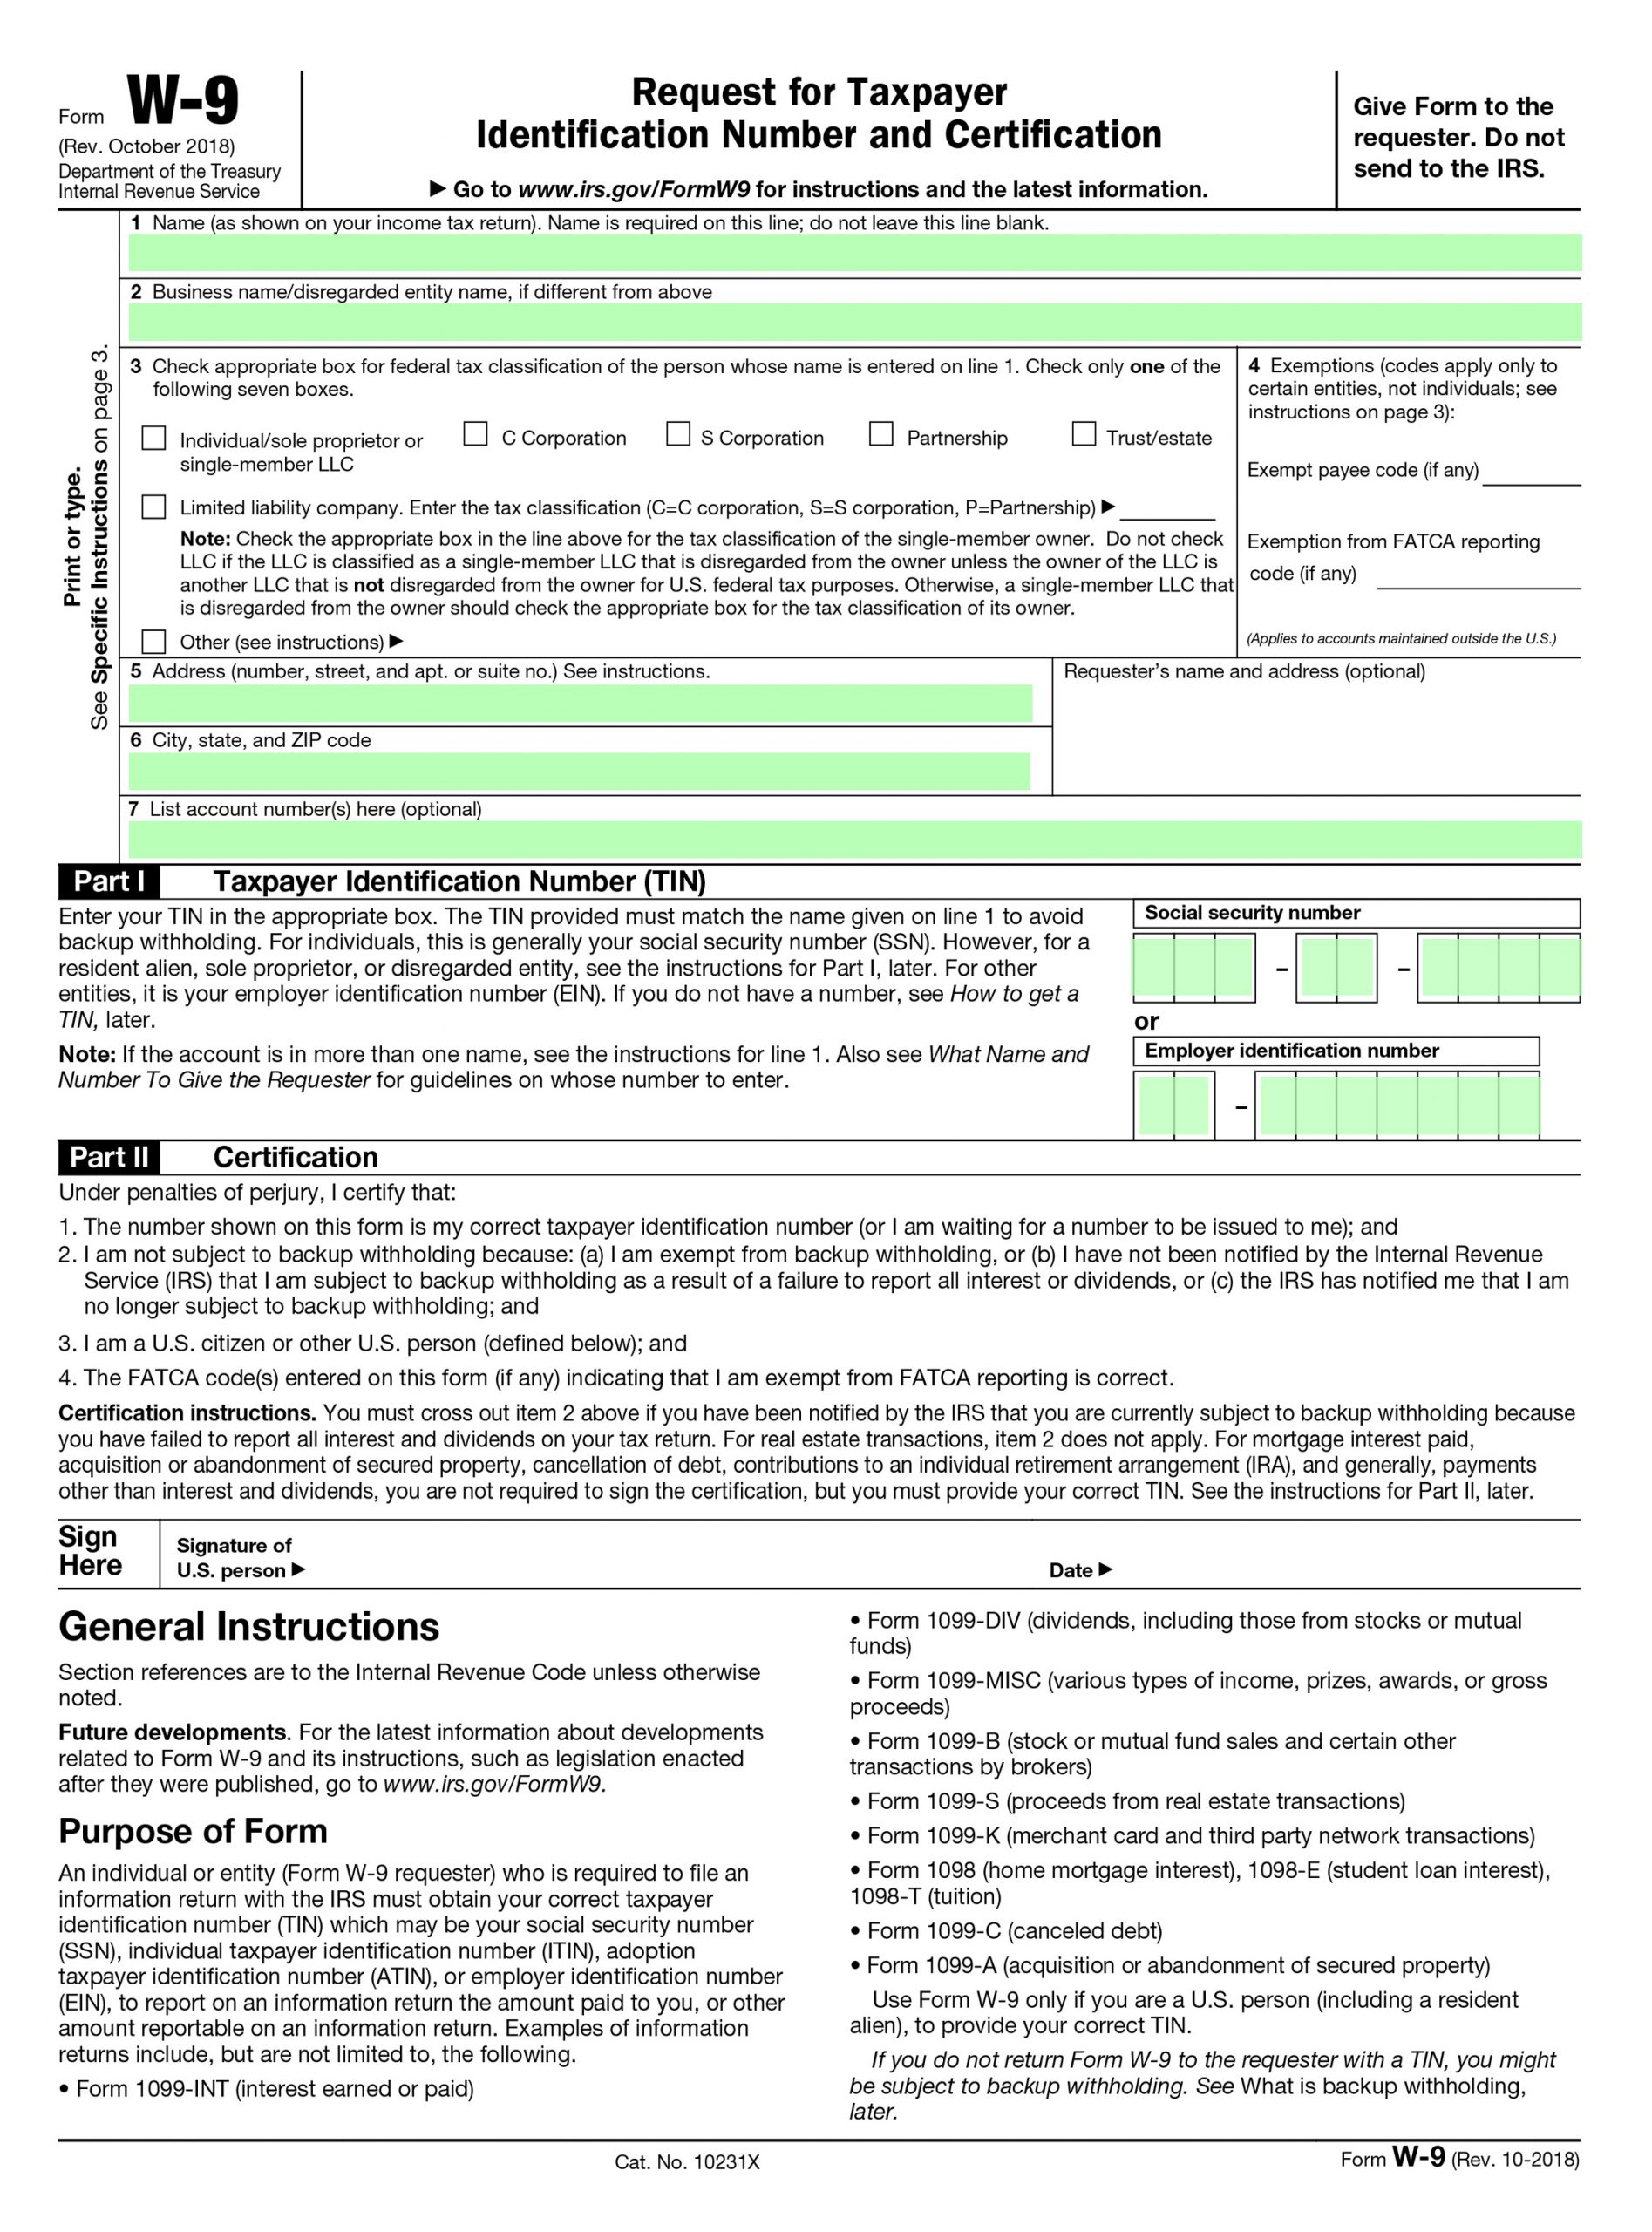 Irs Form W 9 Printable Download – Custom Wallpapeer